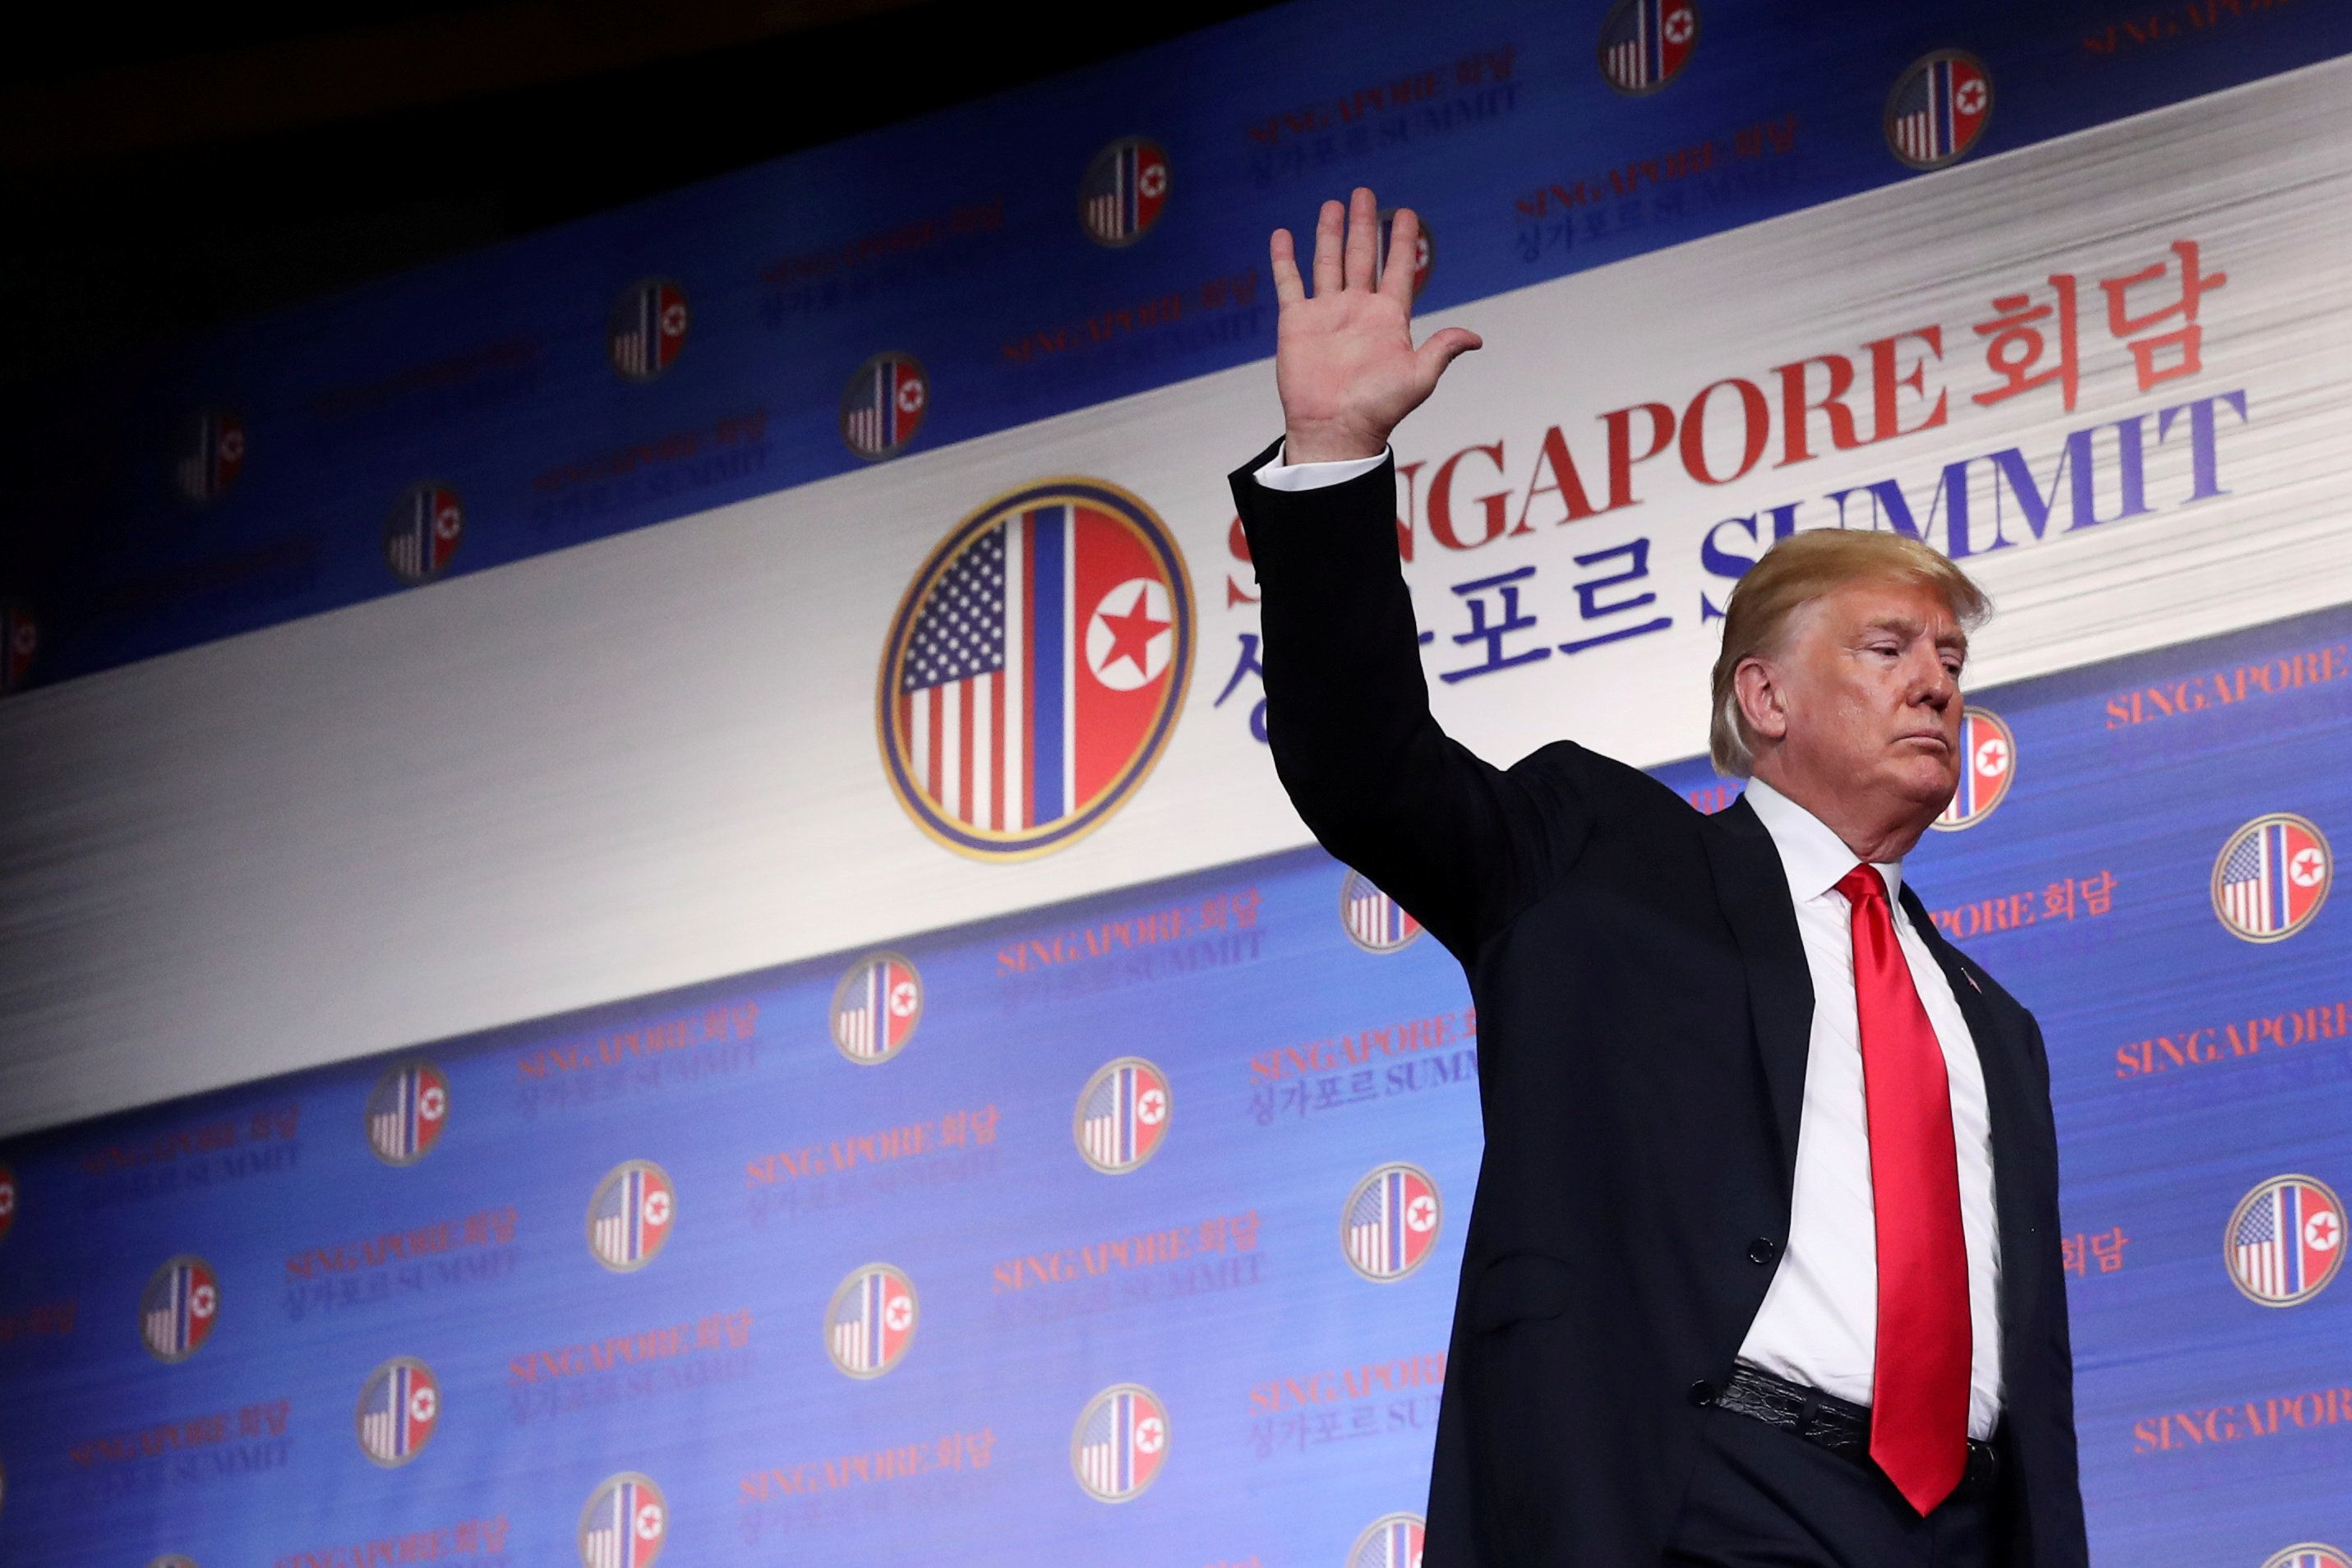 U.S. President Donald Trump waves after a news conference as a secret service agent walks at the Capella Hotel on Sentosa island in Singapore June 12, 2018. REUTERS/Jonathan Ernst     TPX IMAGES OF THE DAY